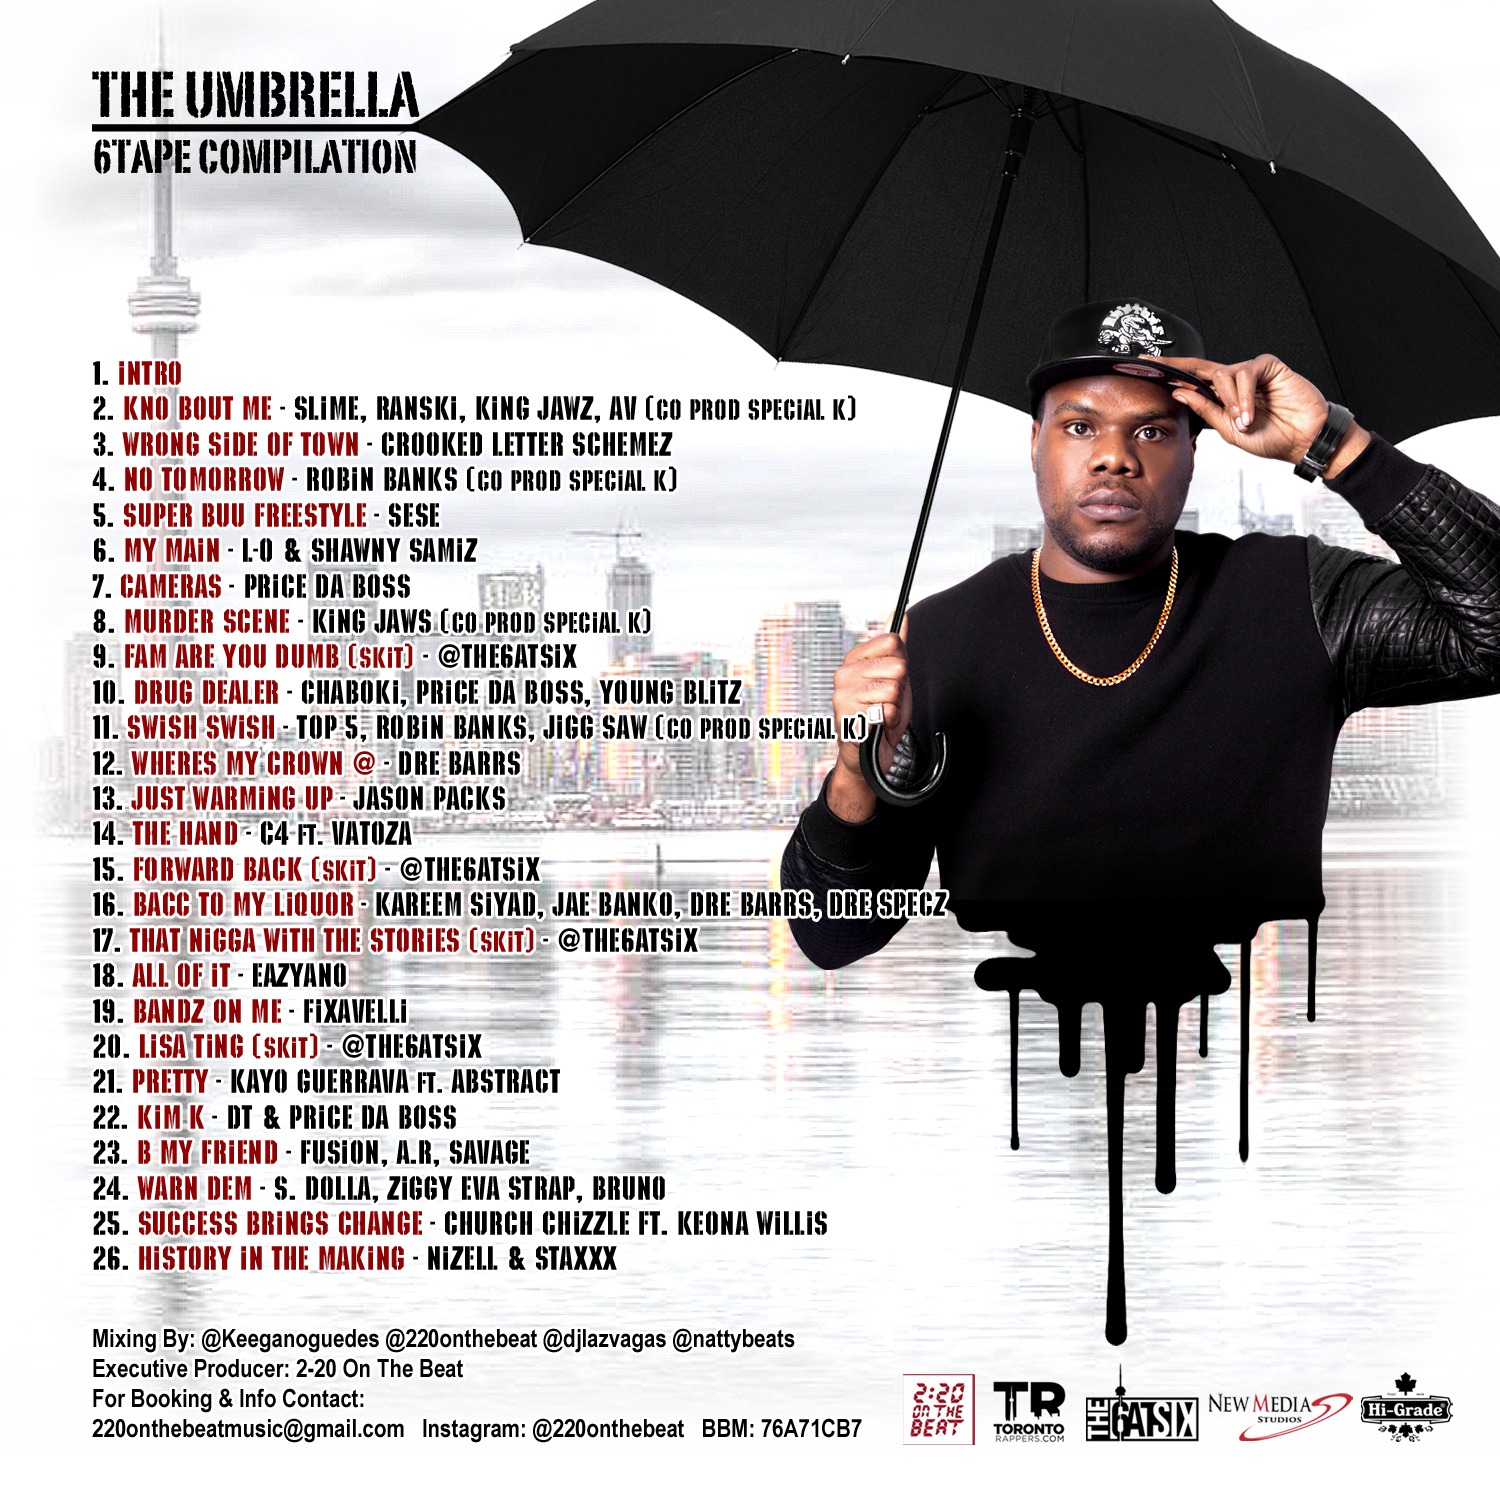 The Umbrella 6Tape